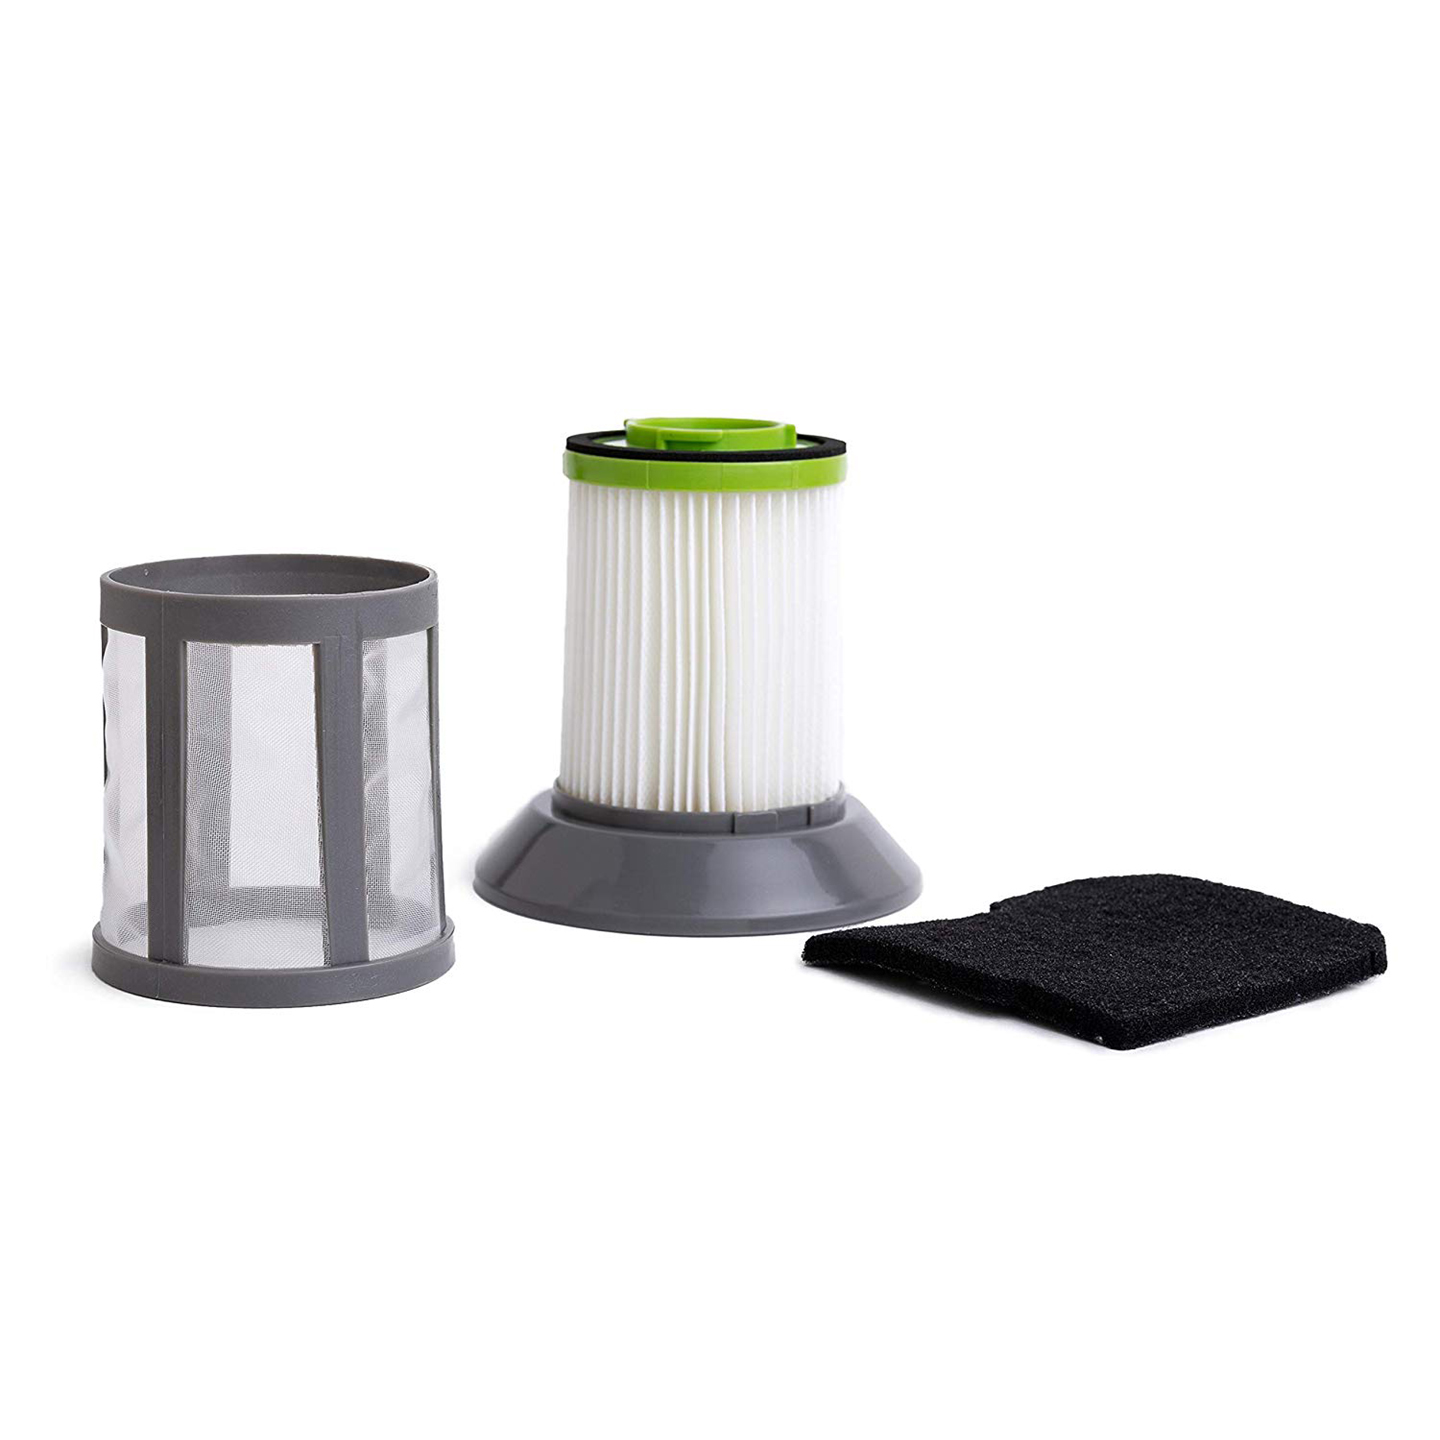 Green Label Replacement Filter Kit 1608602 for Bissell Zing Bagless Canister Cleaners